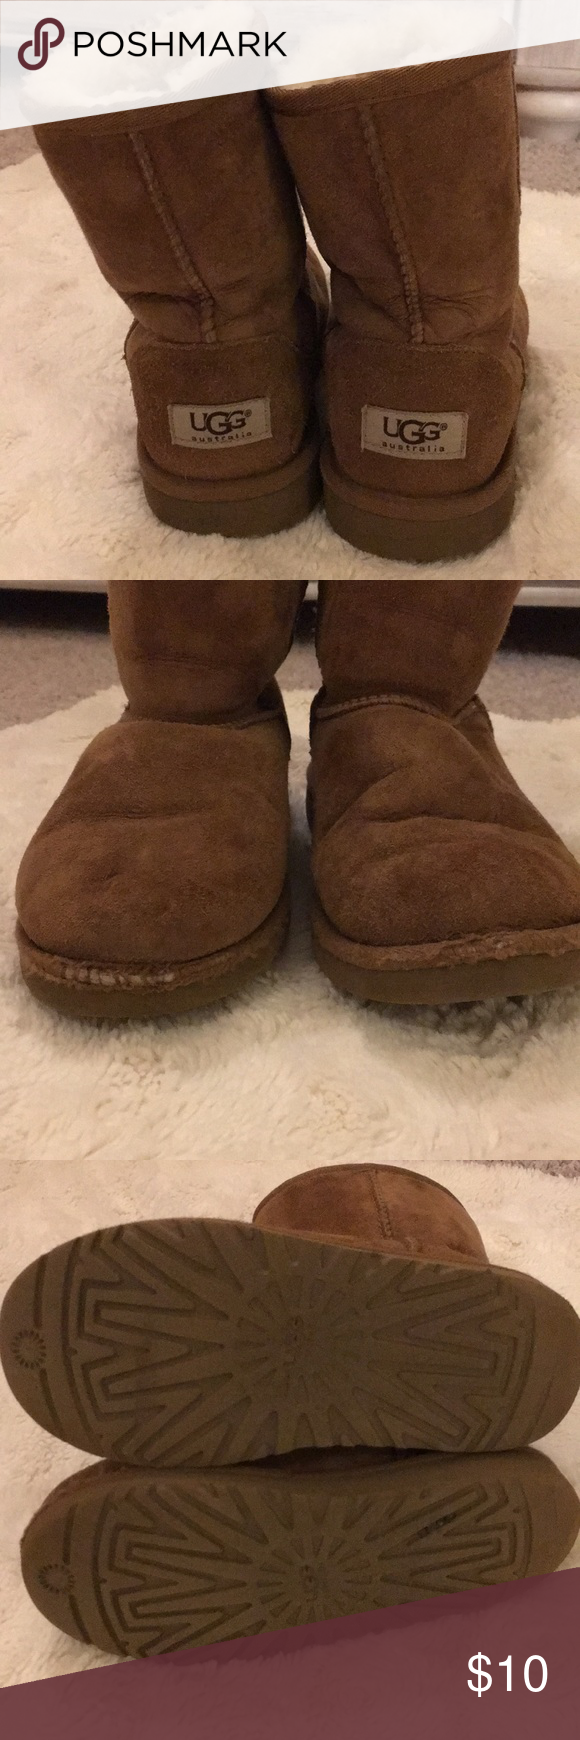 Uggs girls boots size my year old outgrew these too quick any